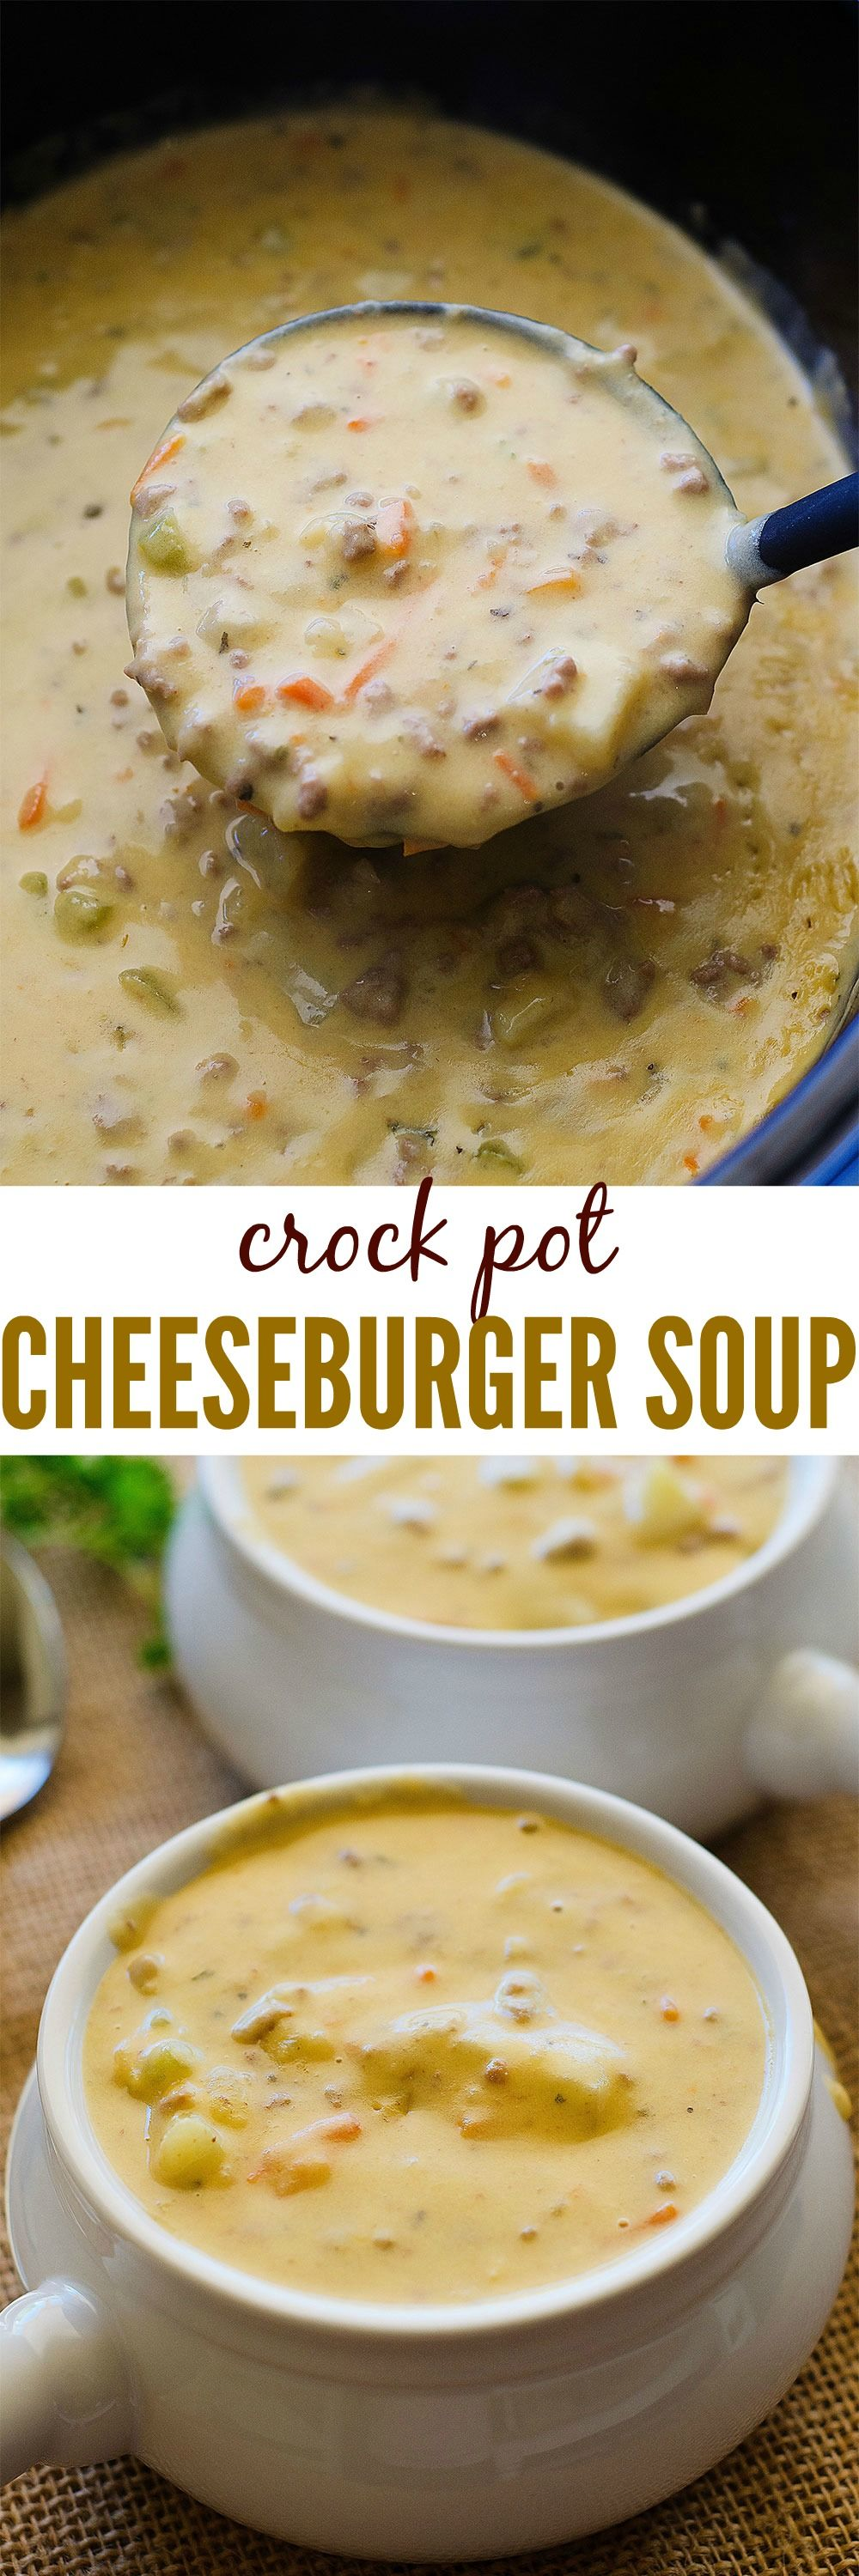 CrockPot_CheeseburgerSoup- for THM, use microwave cauliflower and nuke and purée in food processor before adding to soup.